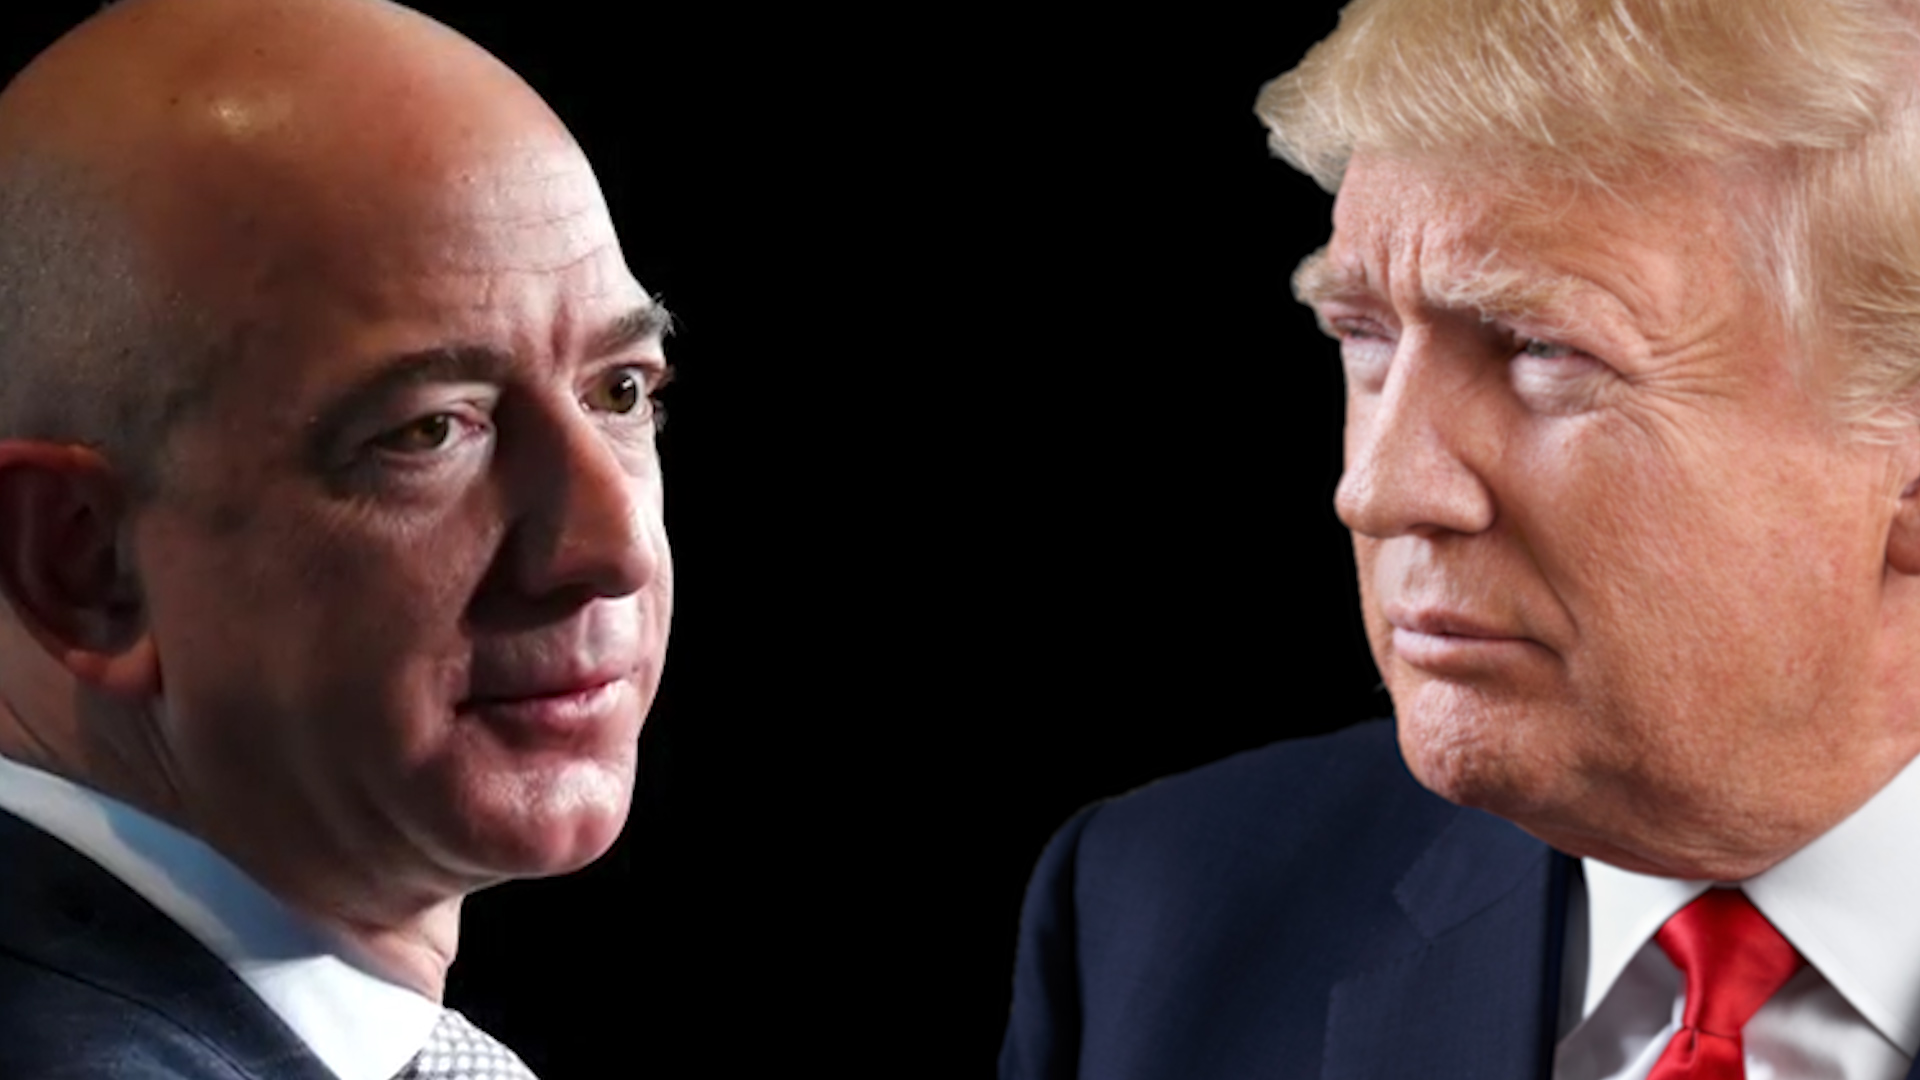 Trump targets Amazon and its taxes in Twitter attack